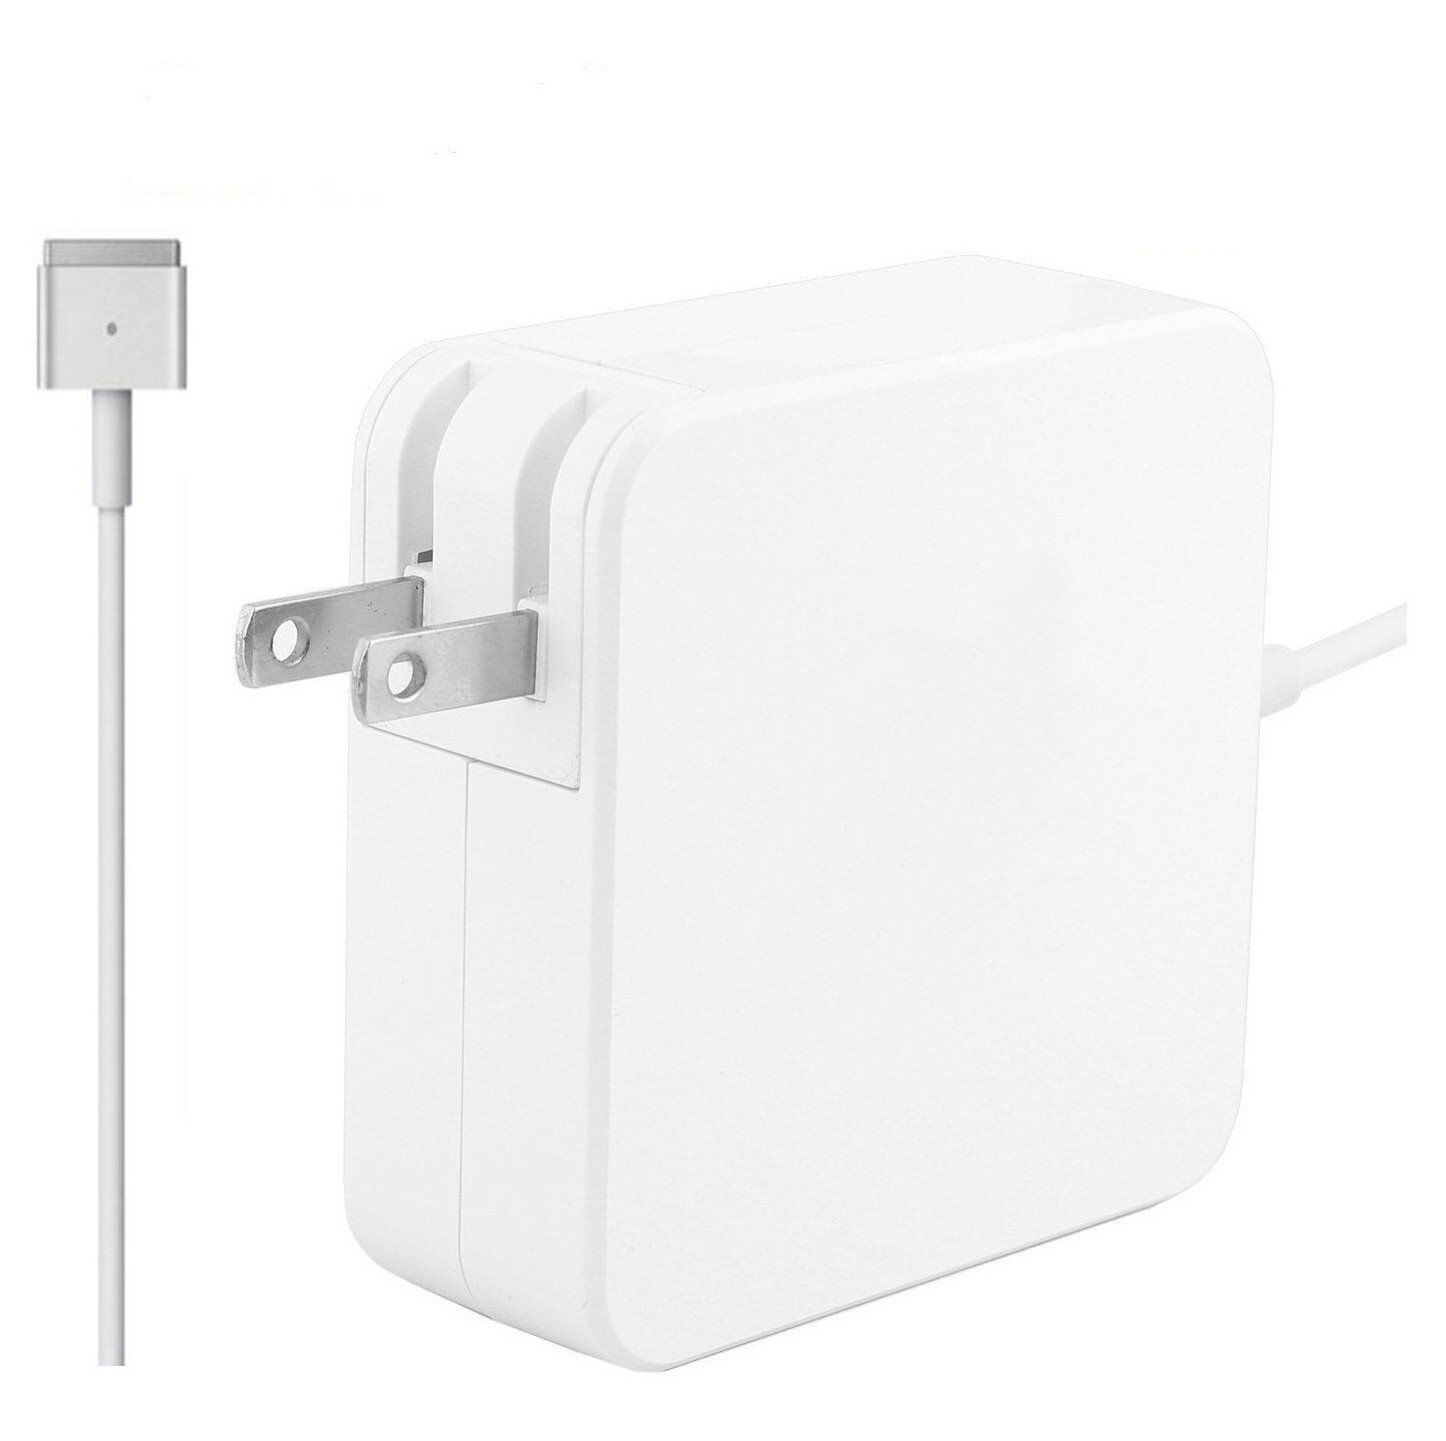 Macbook Pro Charger,KUPPET 85W Macbook Charger with T-Tip,85W charger power adapter for MacBook Pro/Air 13 Inch/15 inch/17inch (Mid 2012 Later Model) by KUPPET